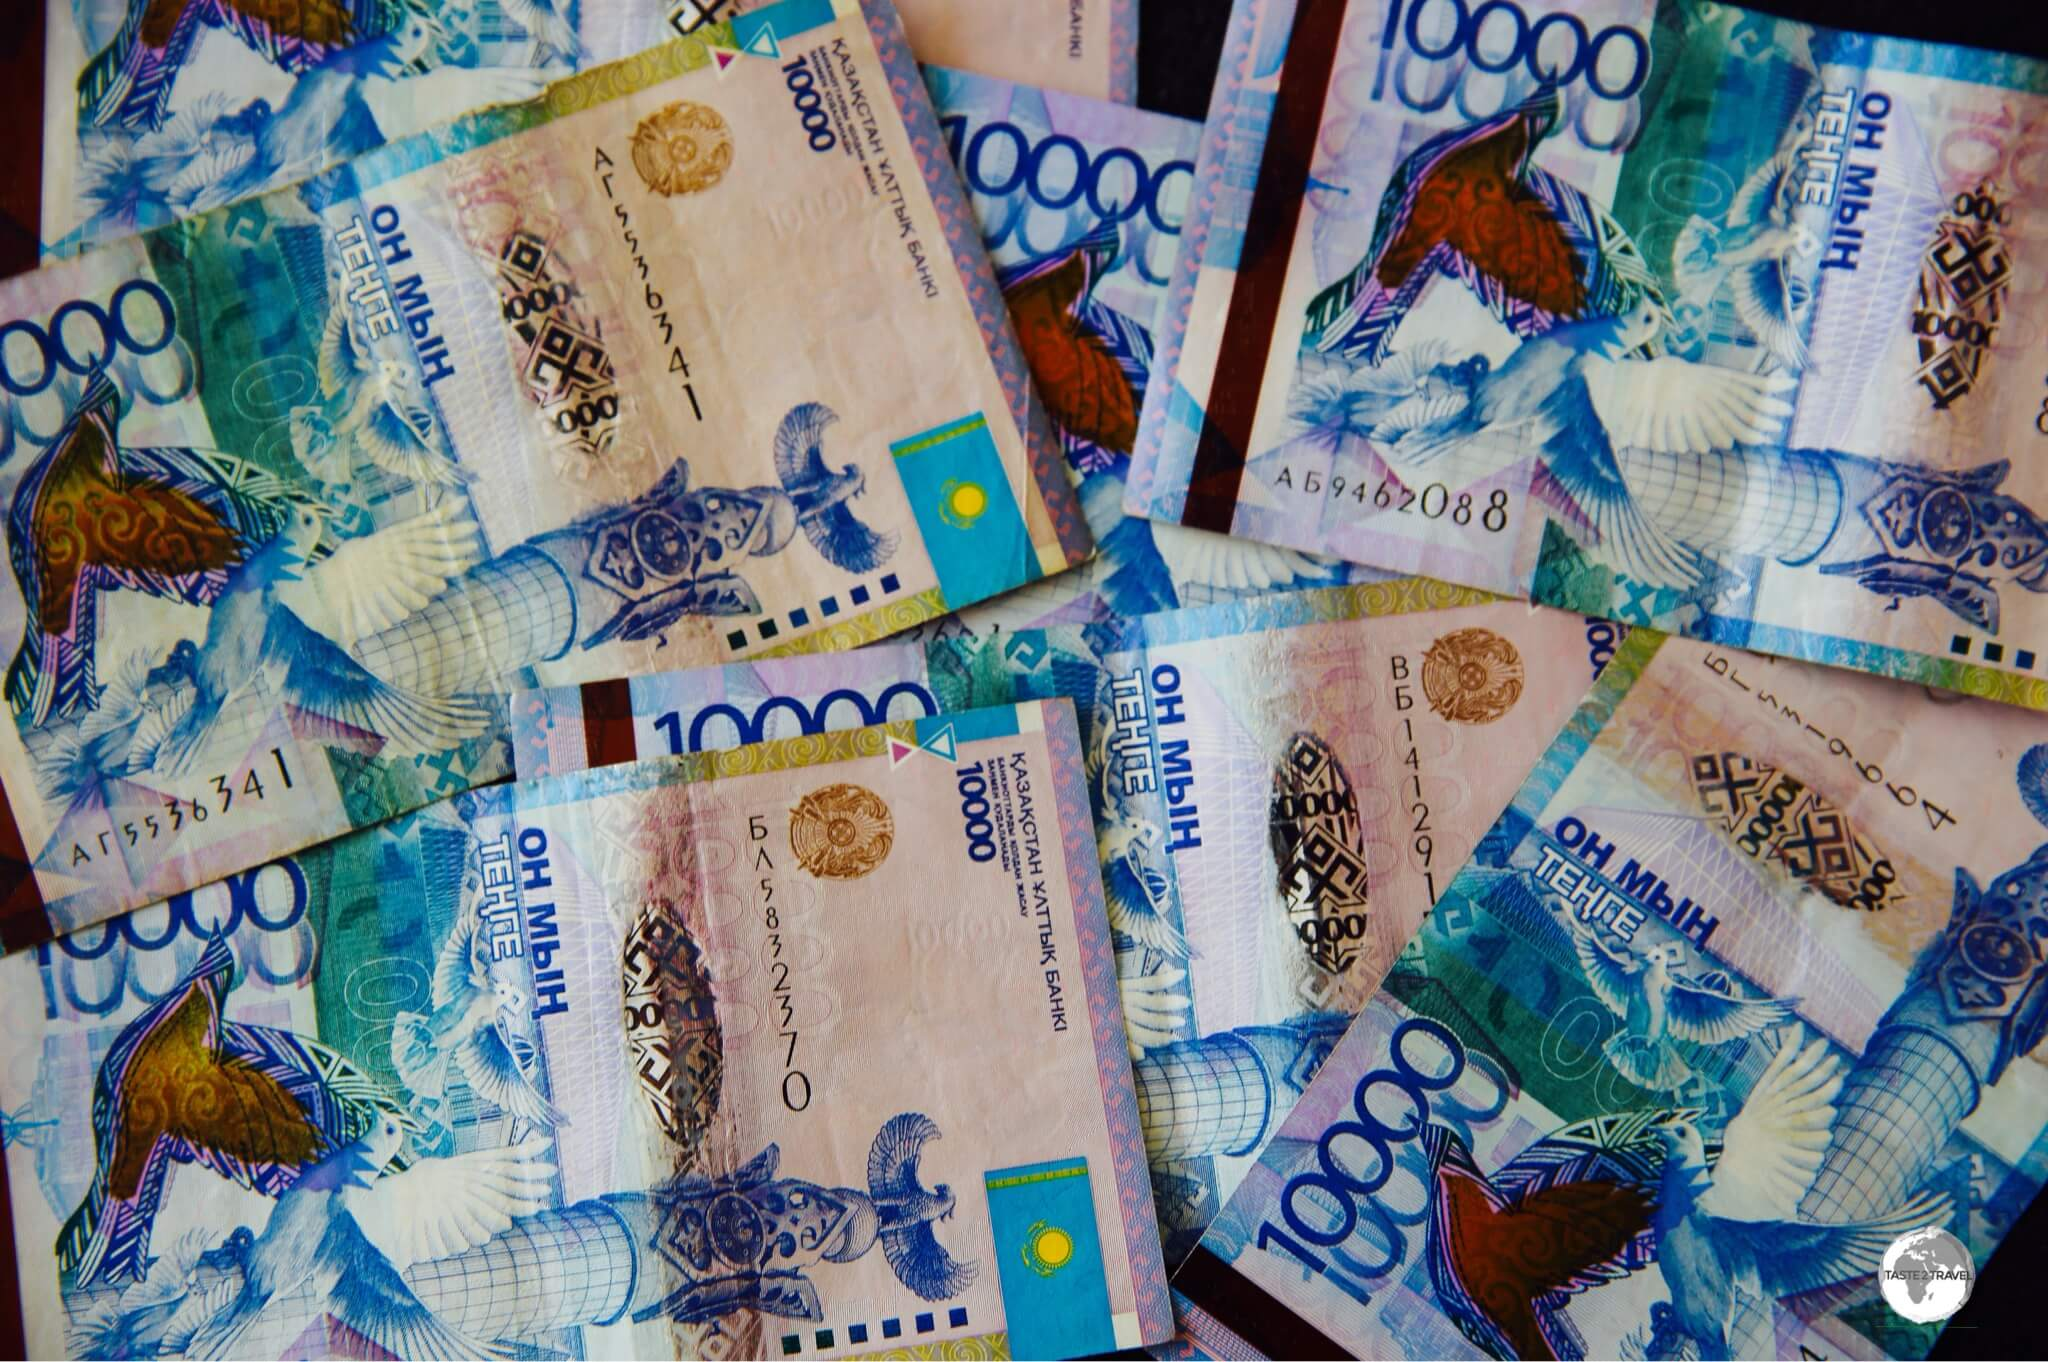 The 10,000 tenge banknote, issued in 2011 to commemorate the 20th anniversary of independence from the Soviet Union.